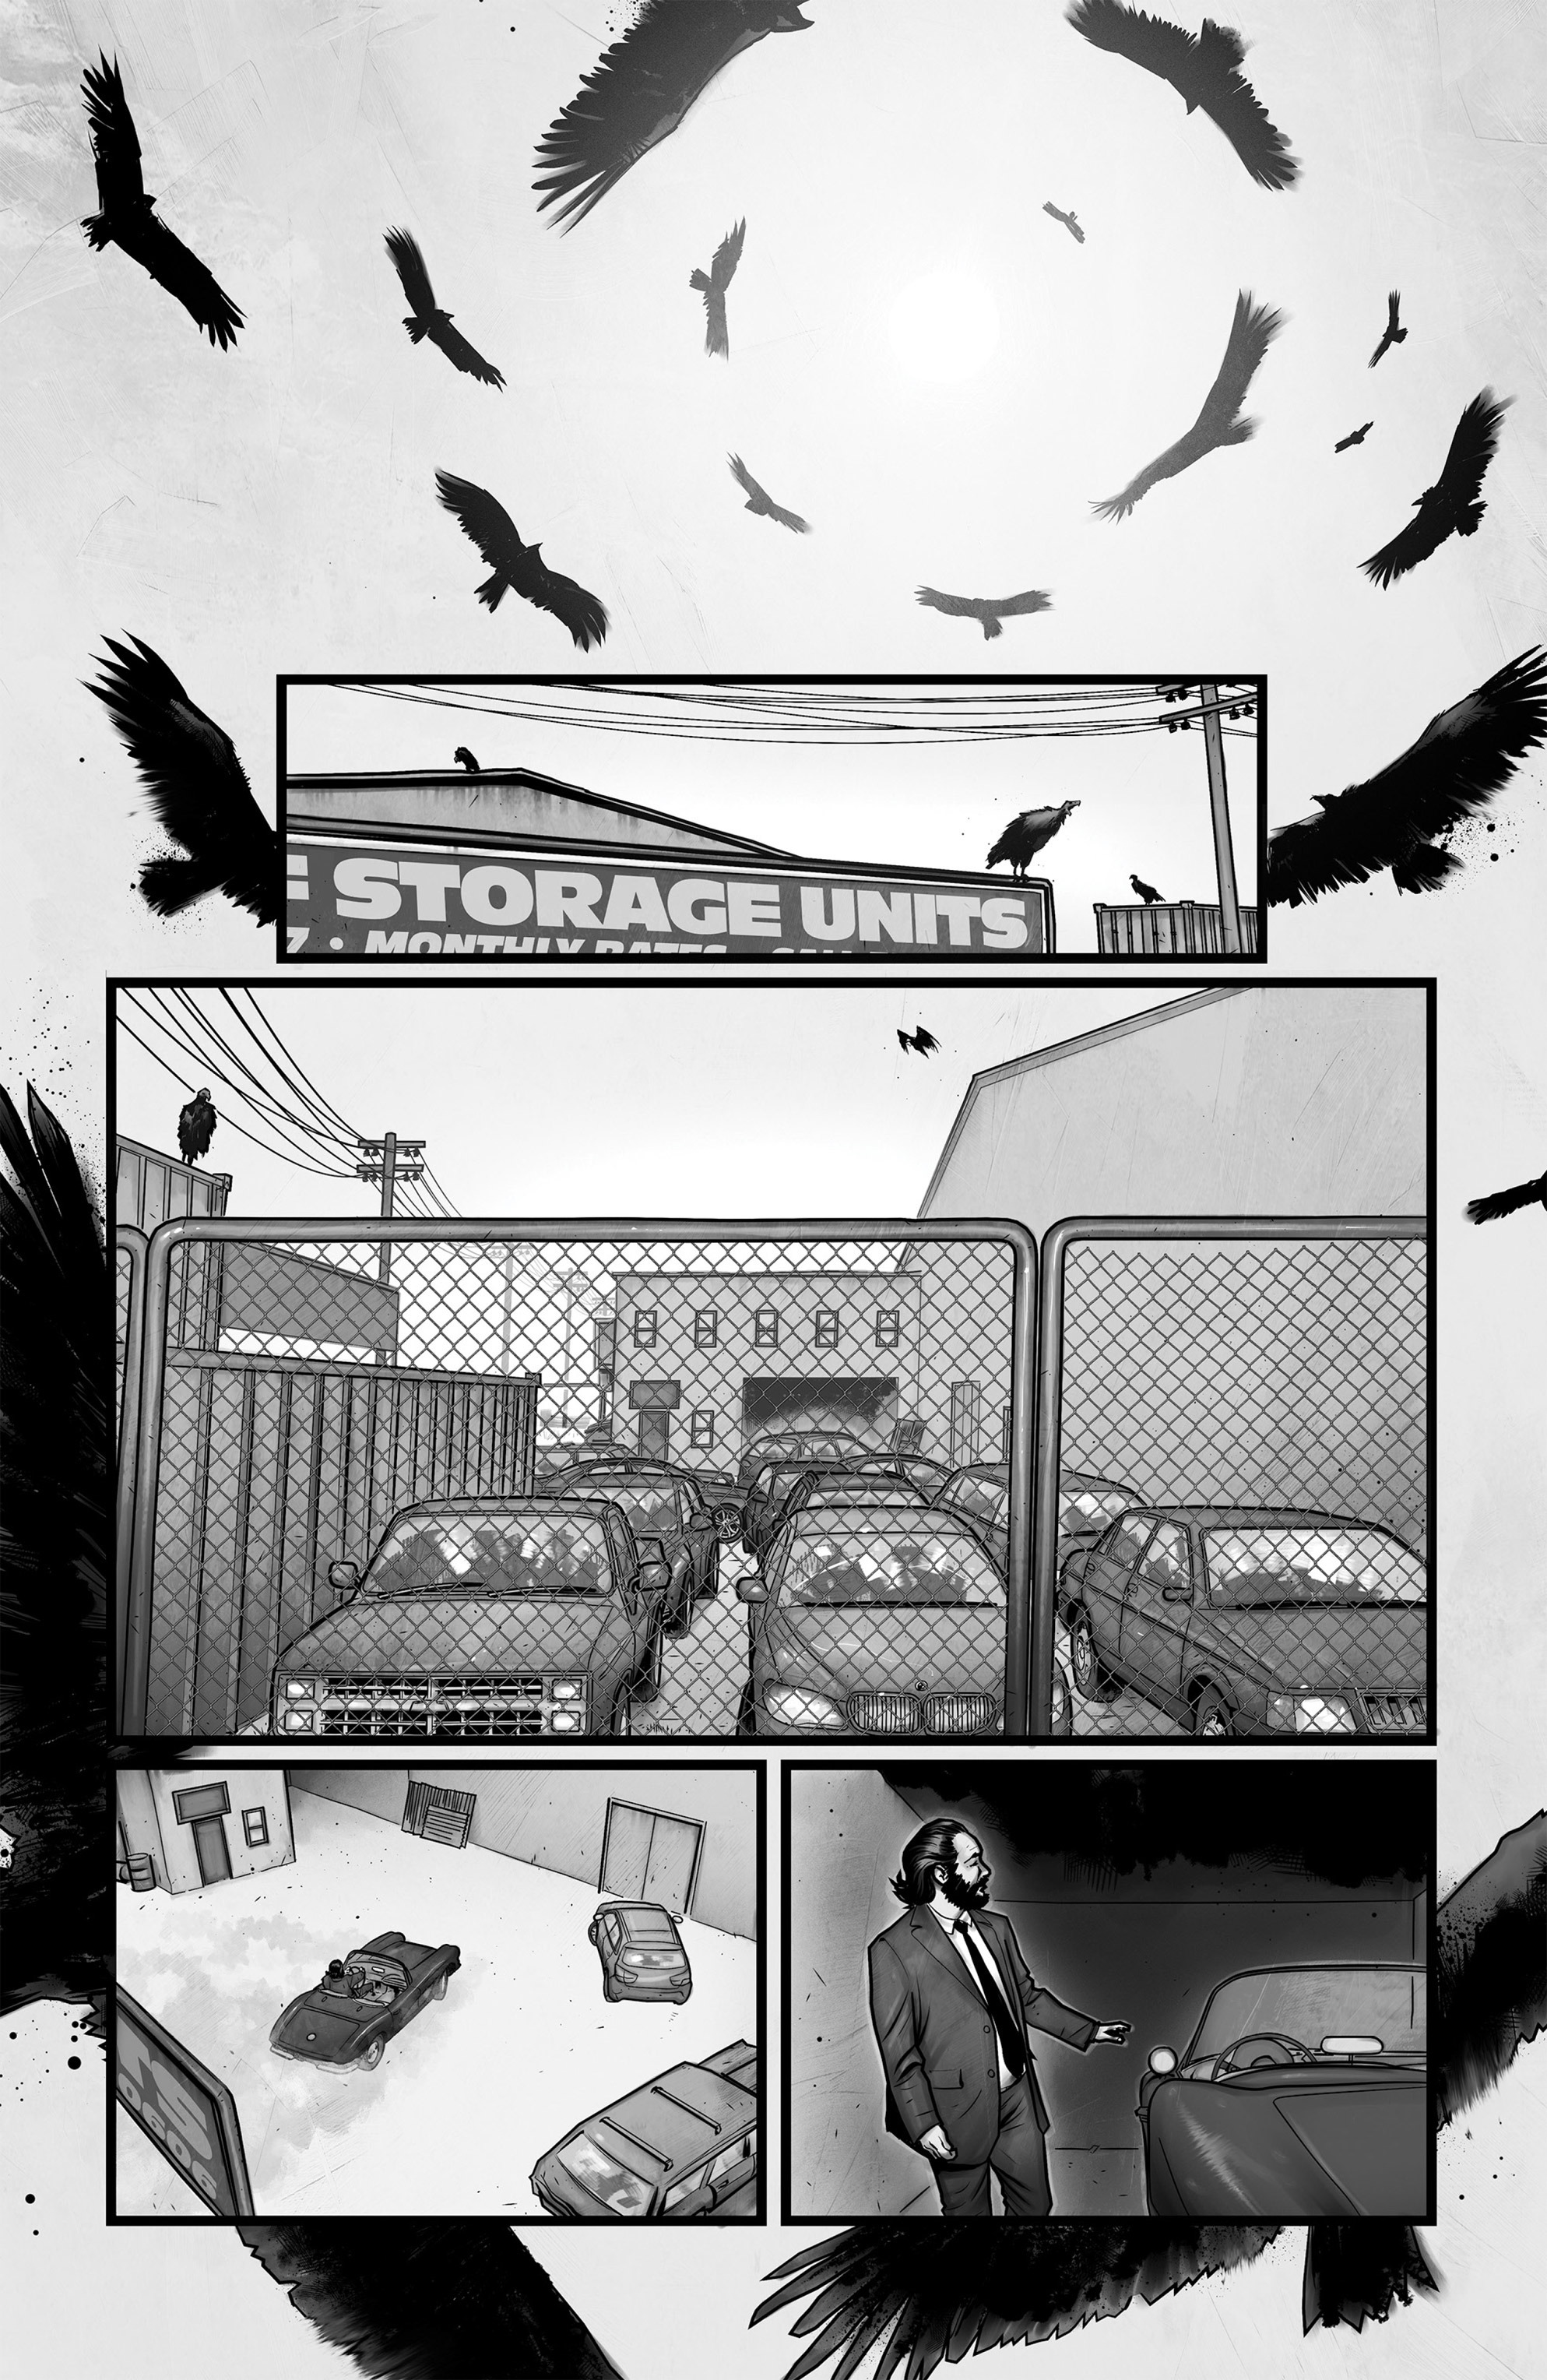 Read online Self Storage comic -  Issue #6 - 18